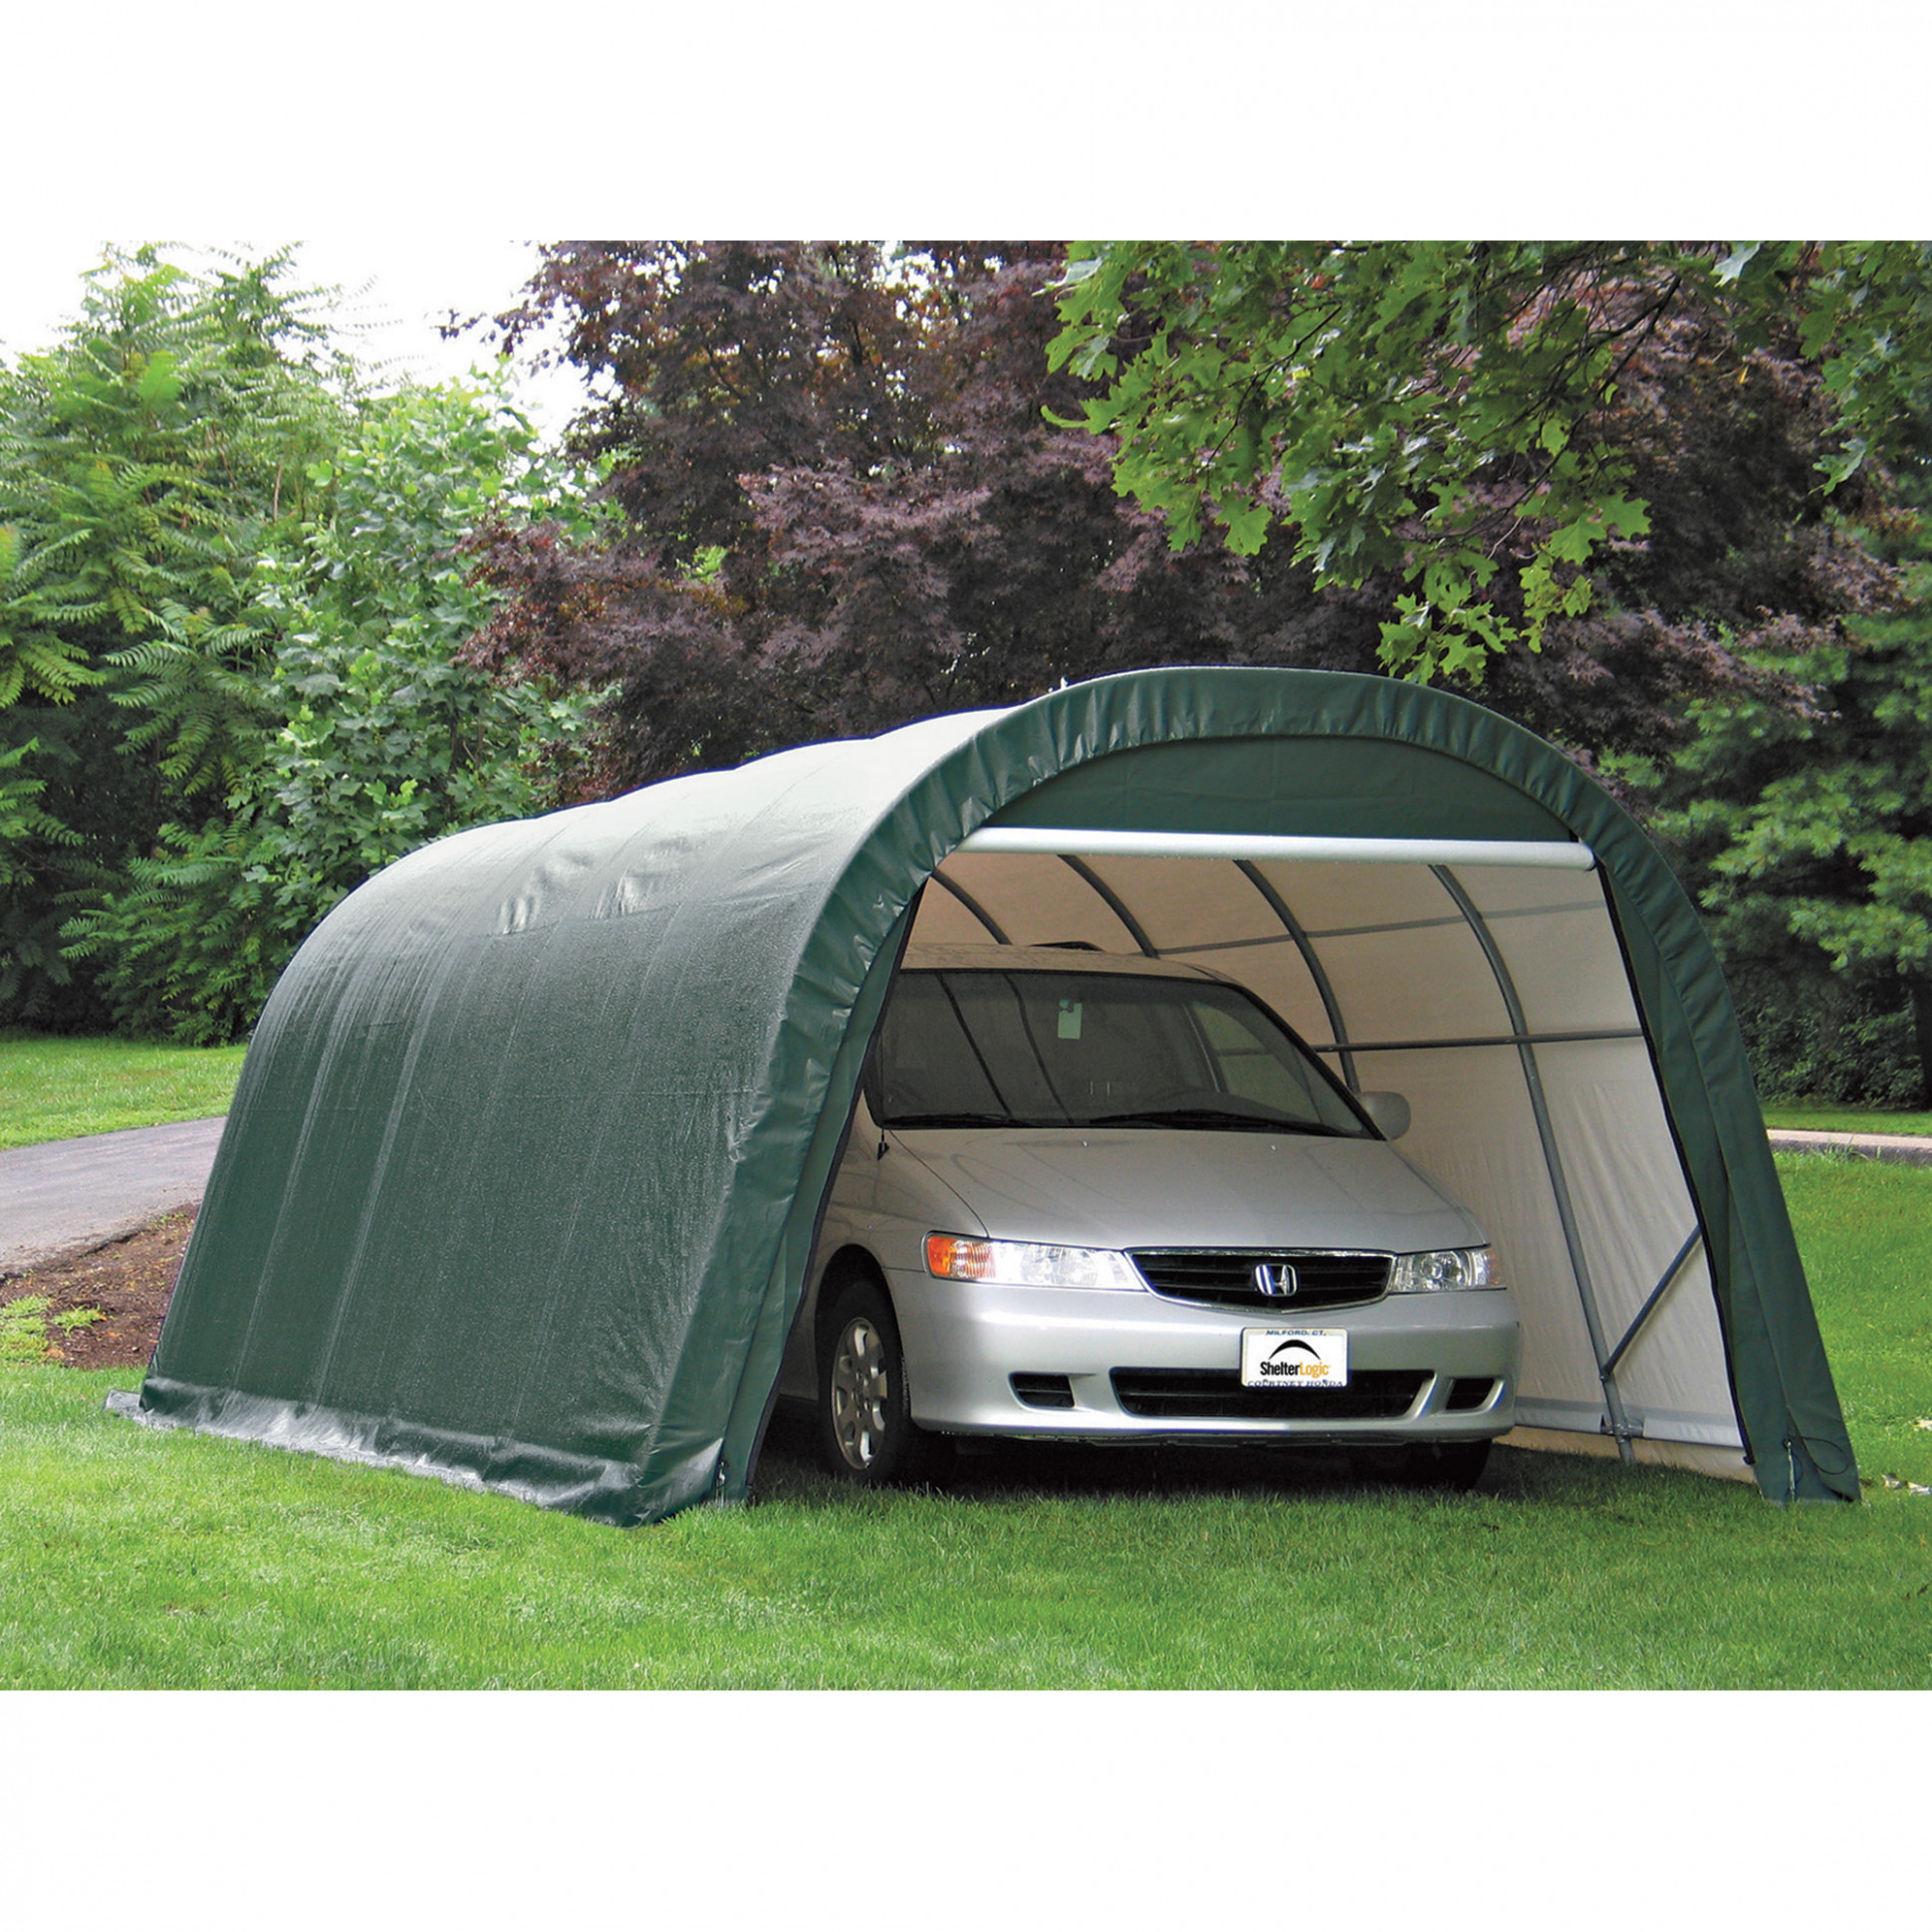 ShelterLogic | Tarps, Canopies + Shelters | Northern Tool + ..